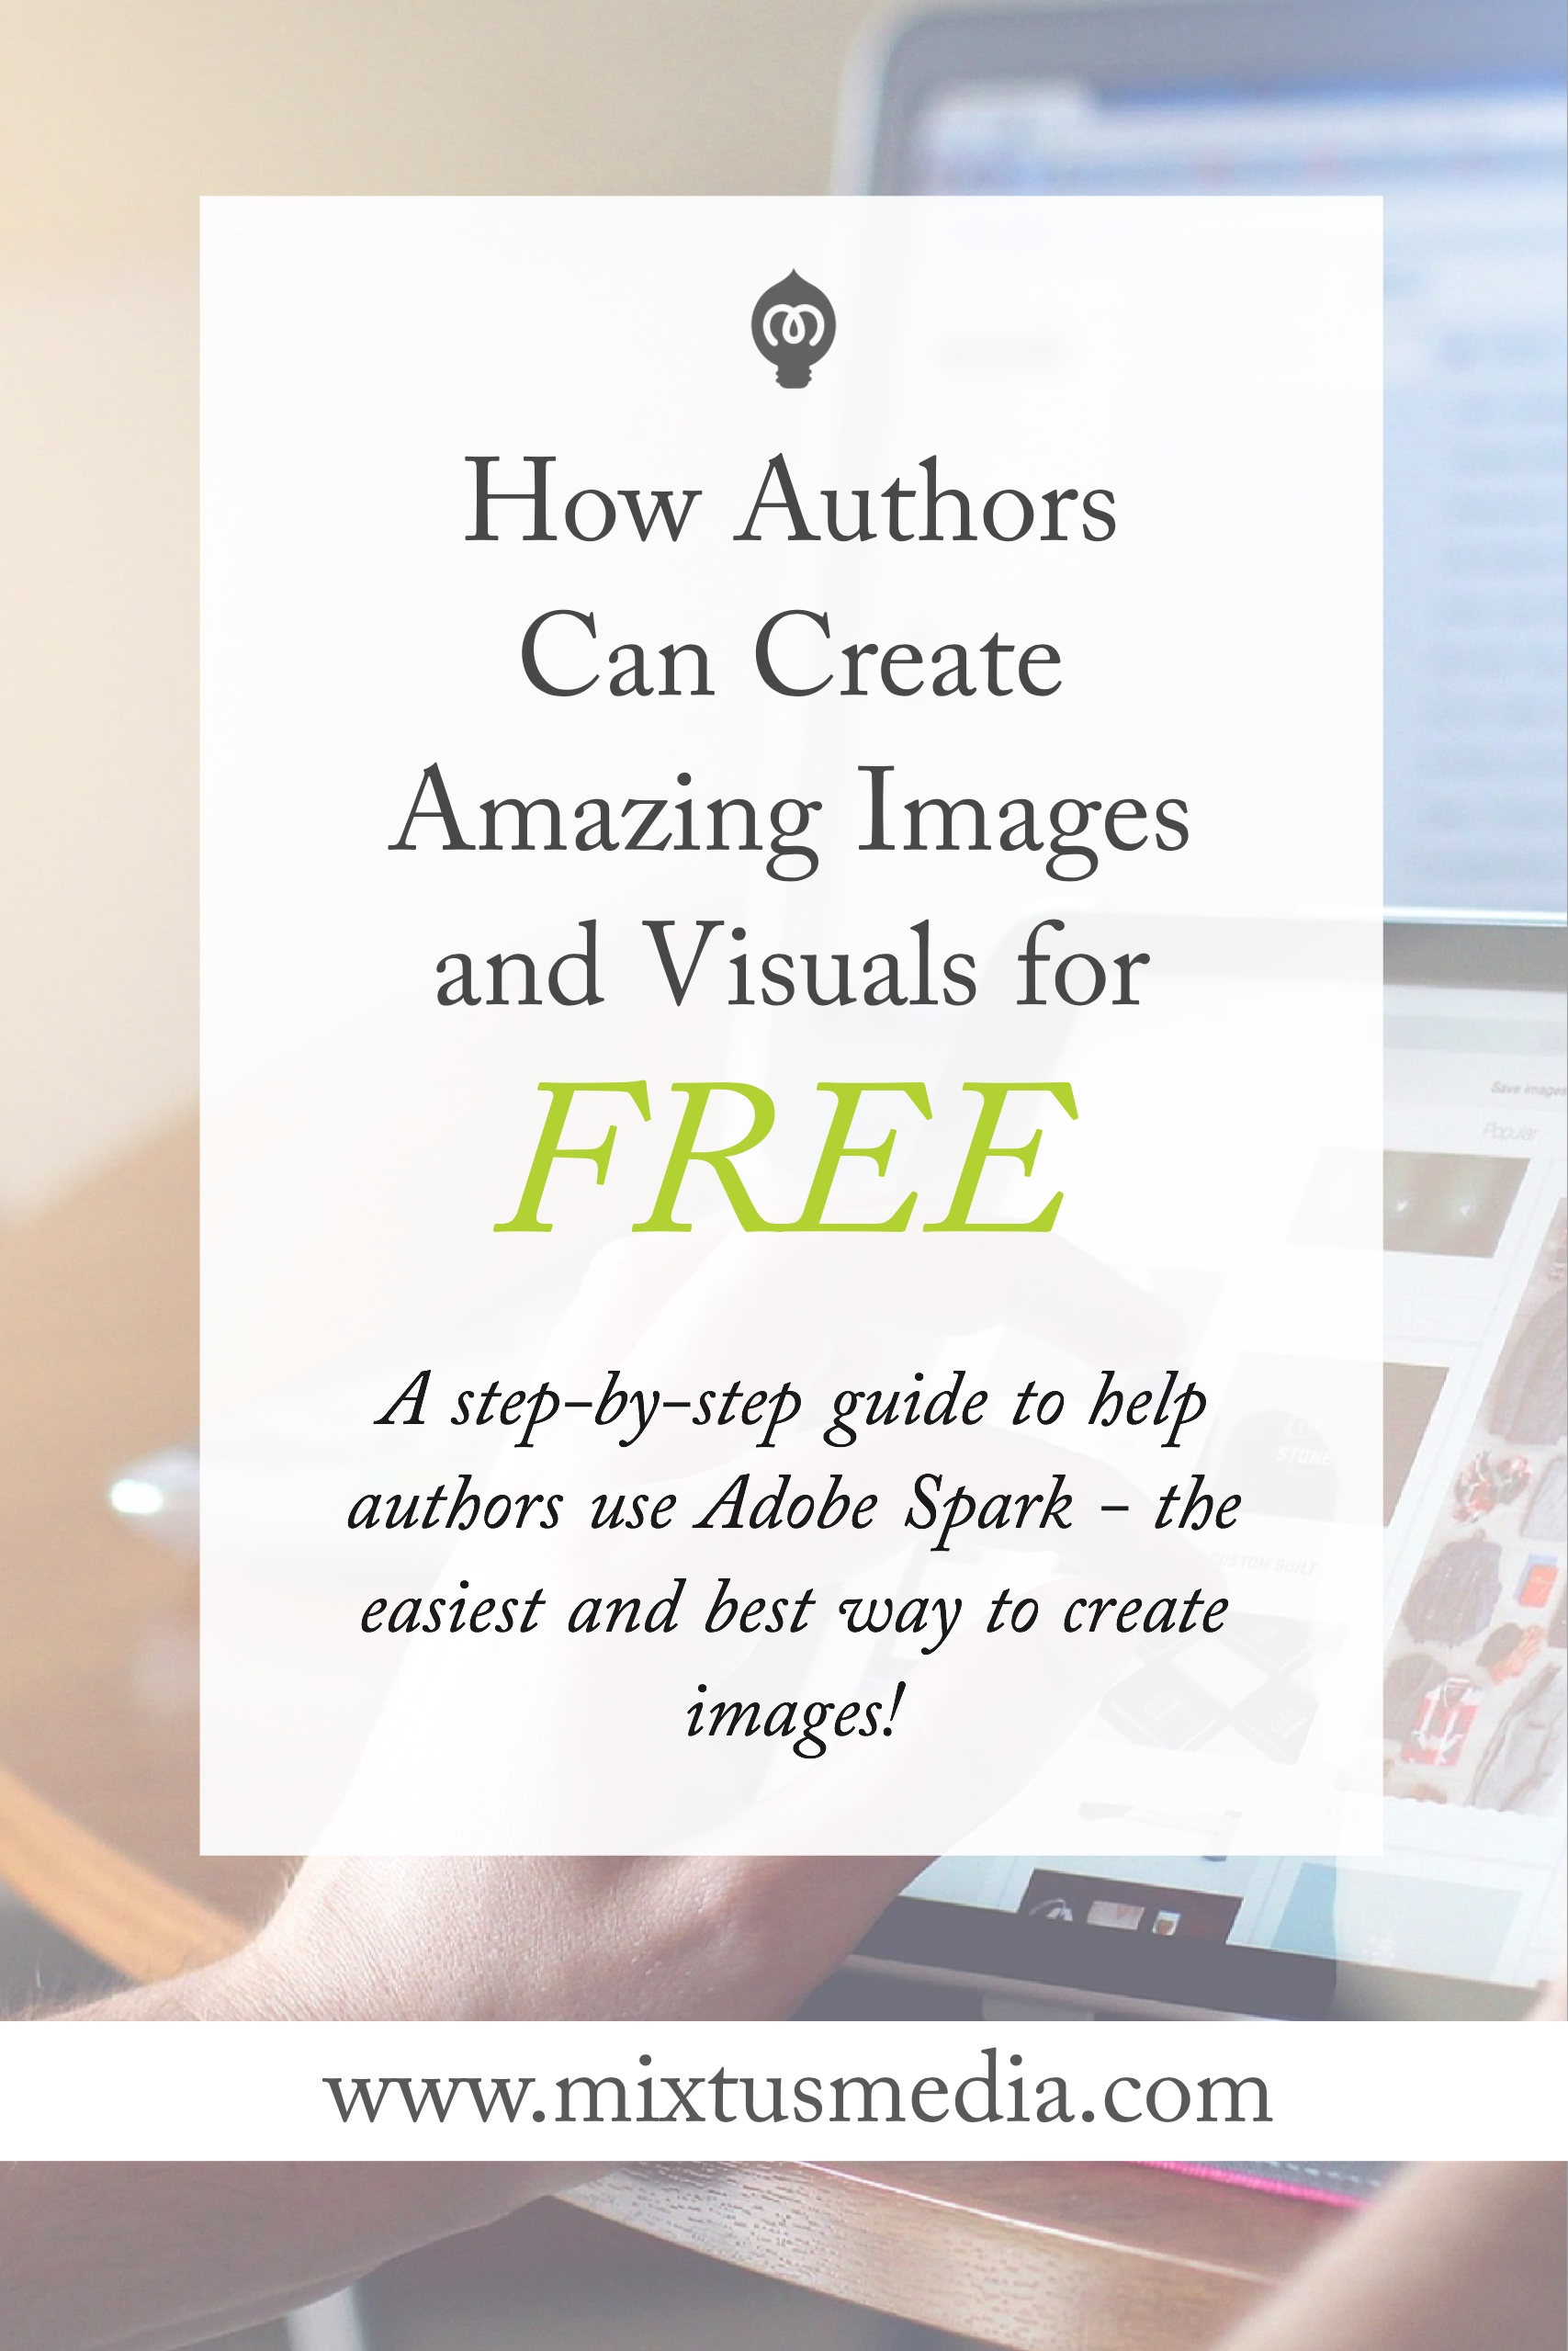 Author Book Marketing, Book Cover Images, Social Media Visuals, Book Marketing Strategy, Adobe Spark How-To